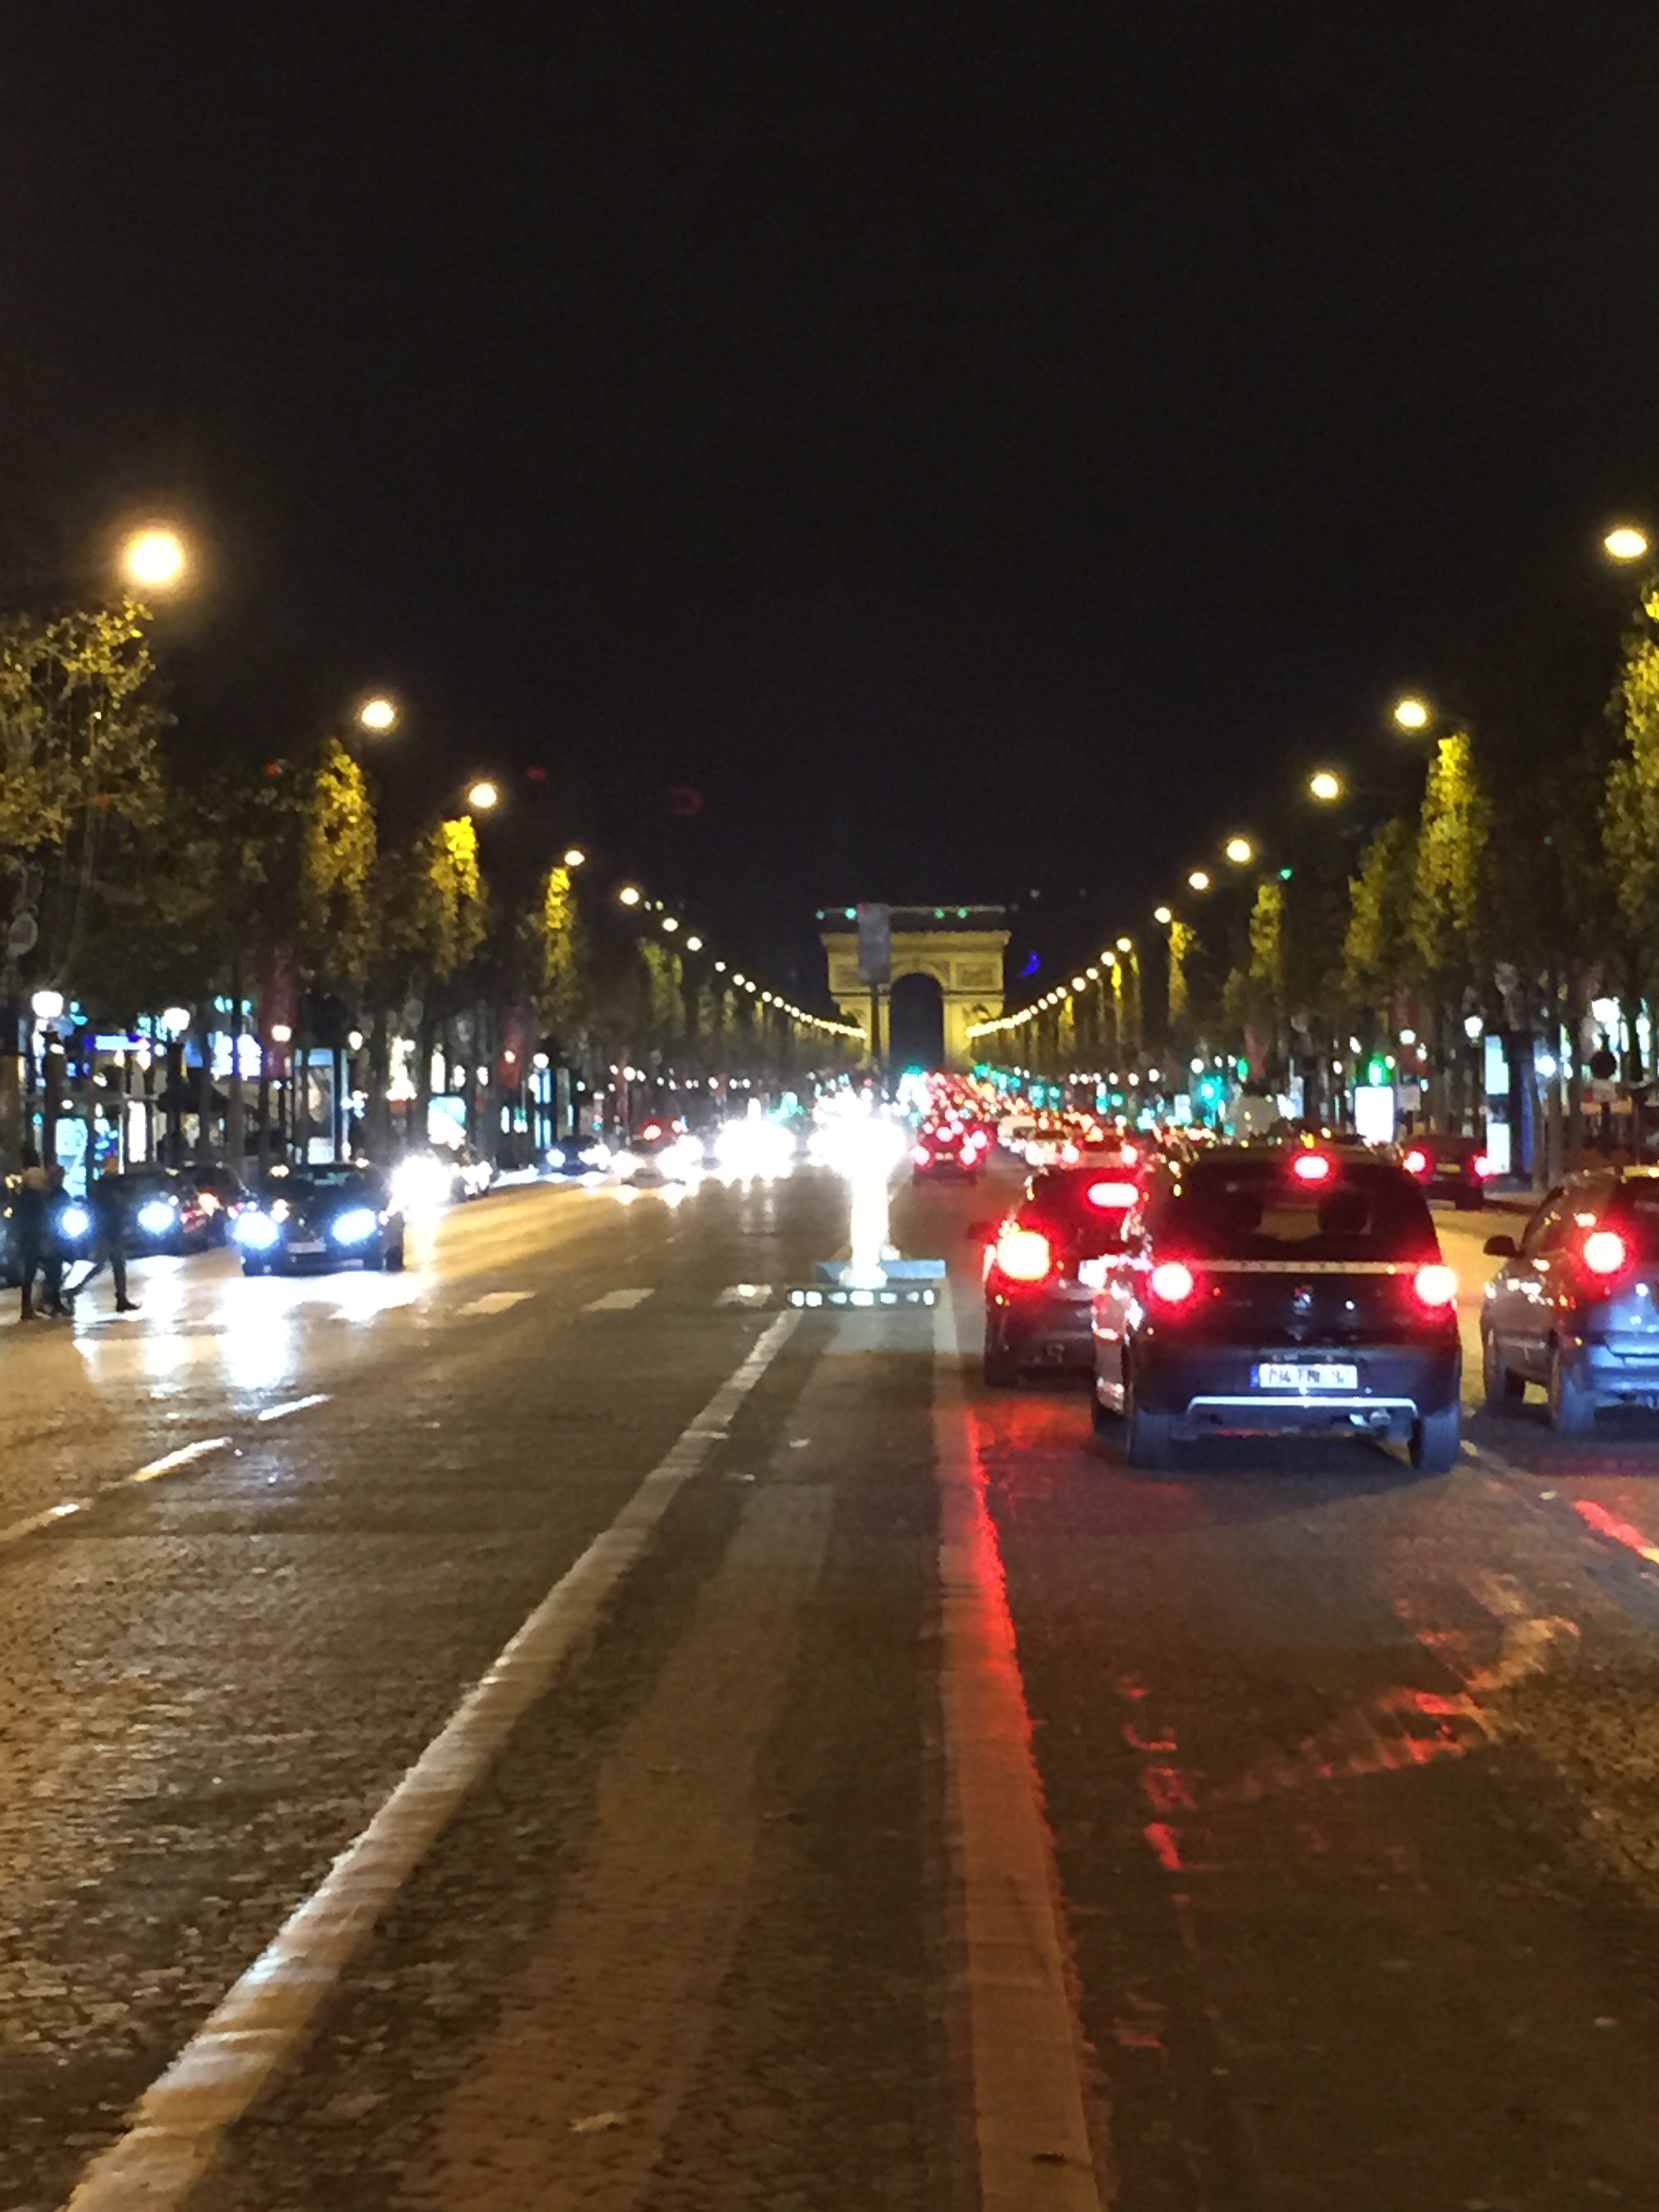 Arch Du Triomphe from the median of the  Champs-Élysées